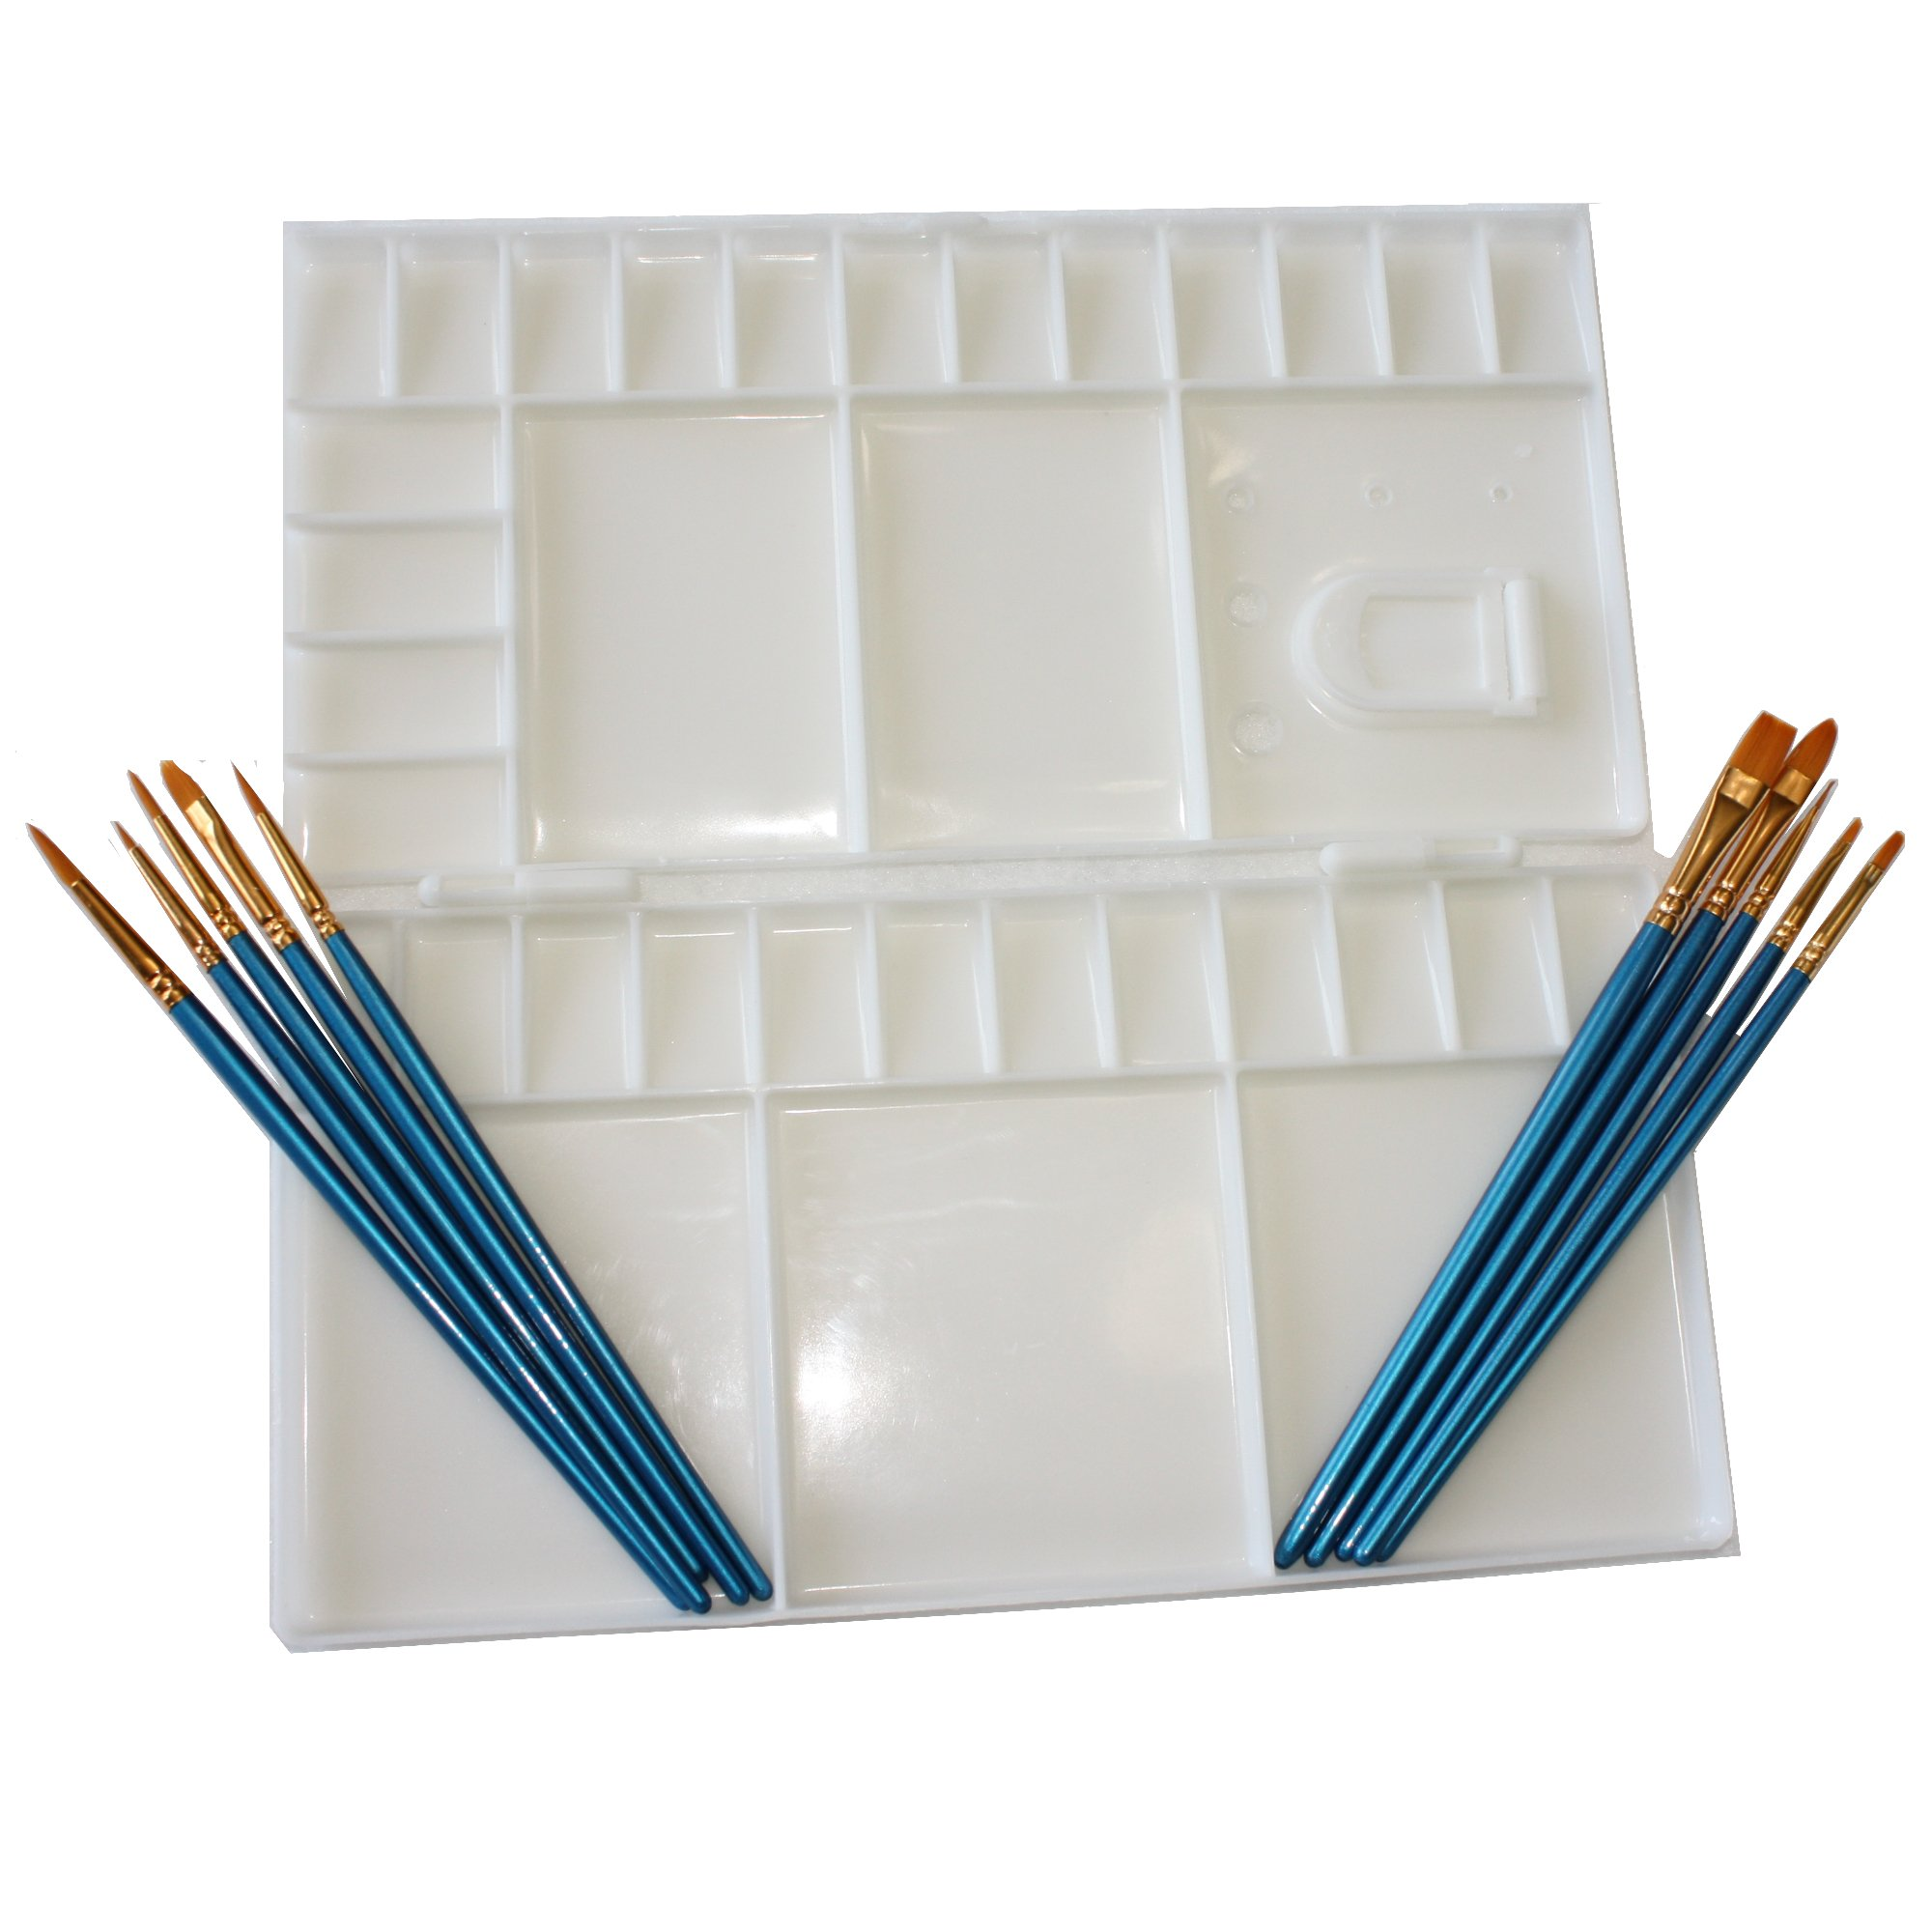 Large Folding watercolor palette with 33 mixing wells, Palette folds in half to for enclosed Palette, and 10 piece Nylon Paint Brush set for Watercolor, Acrylic, and Oil painting art set use.